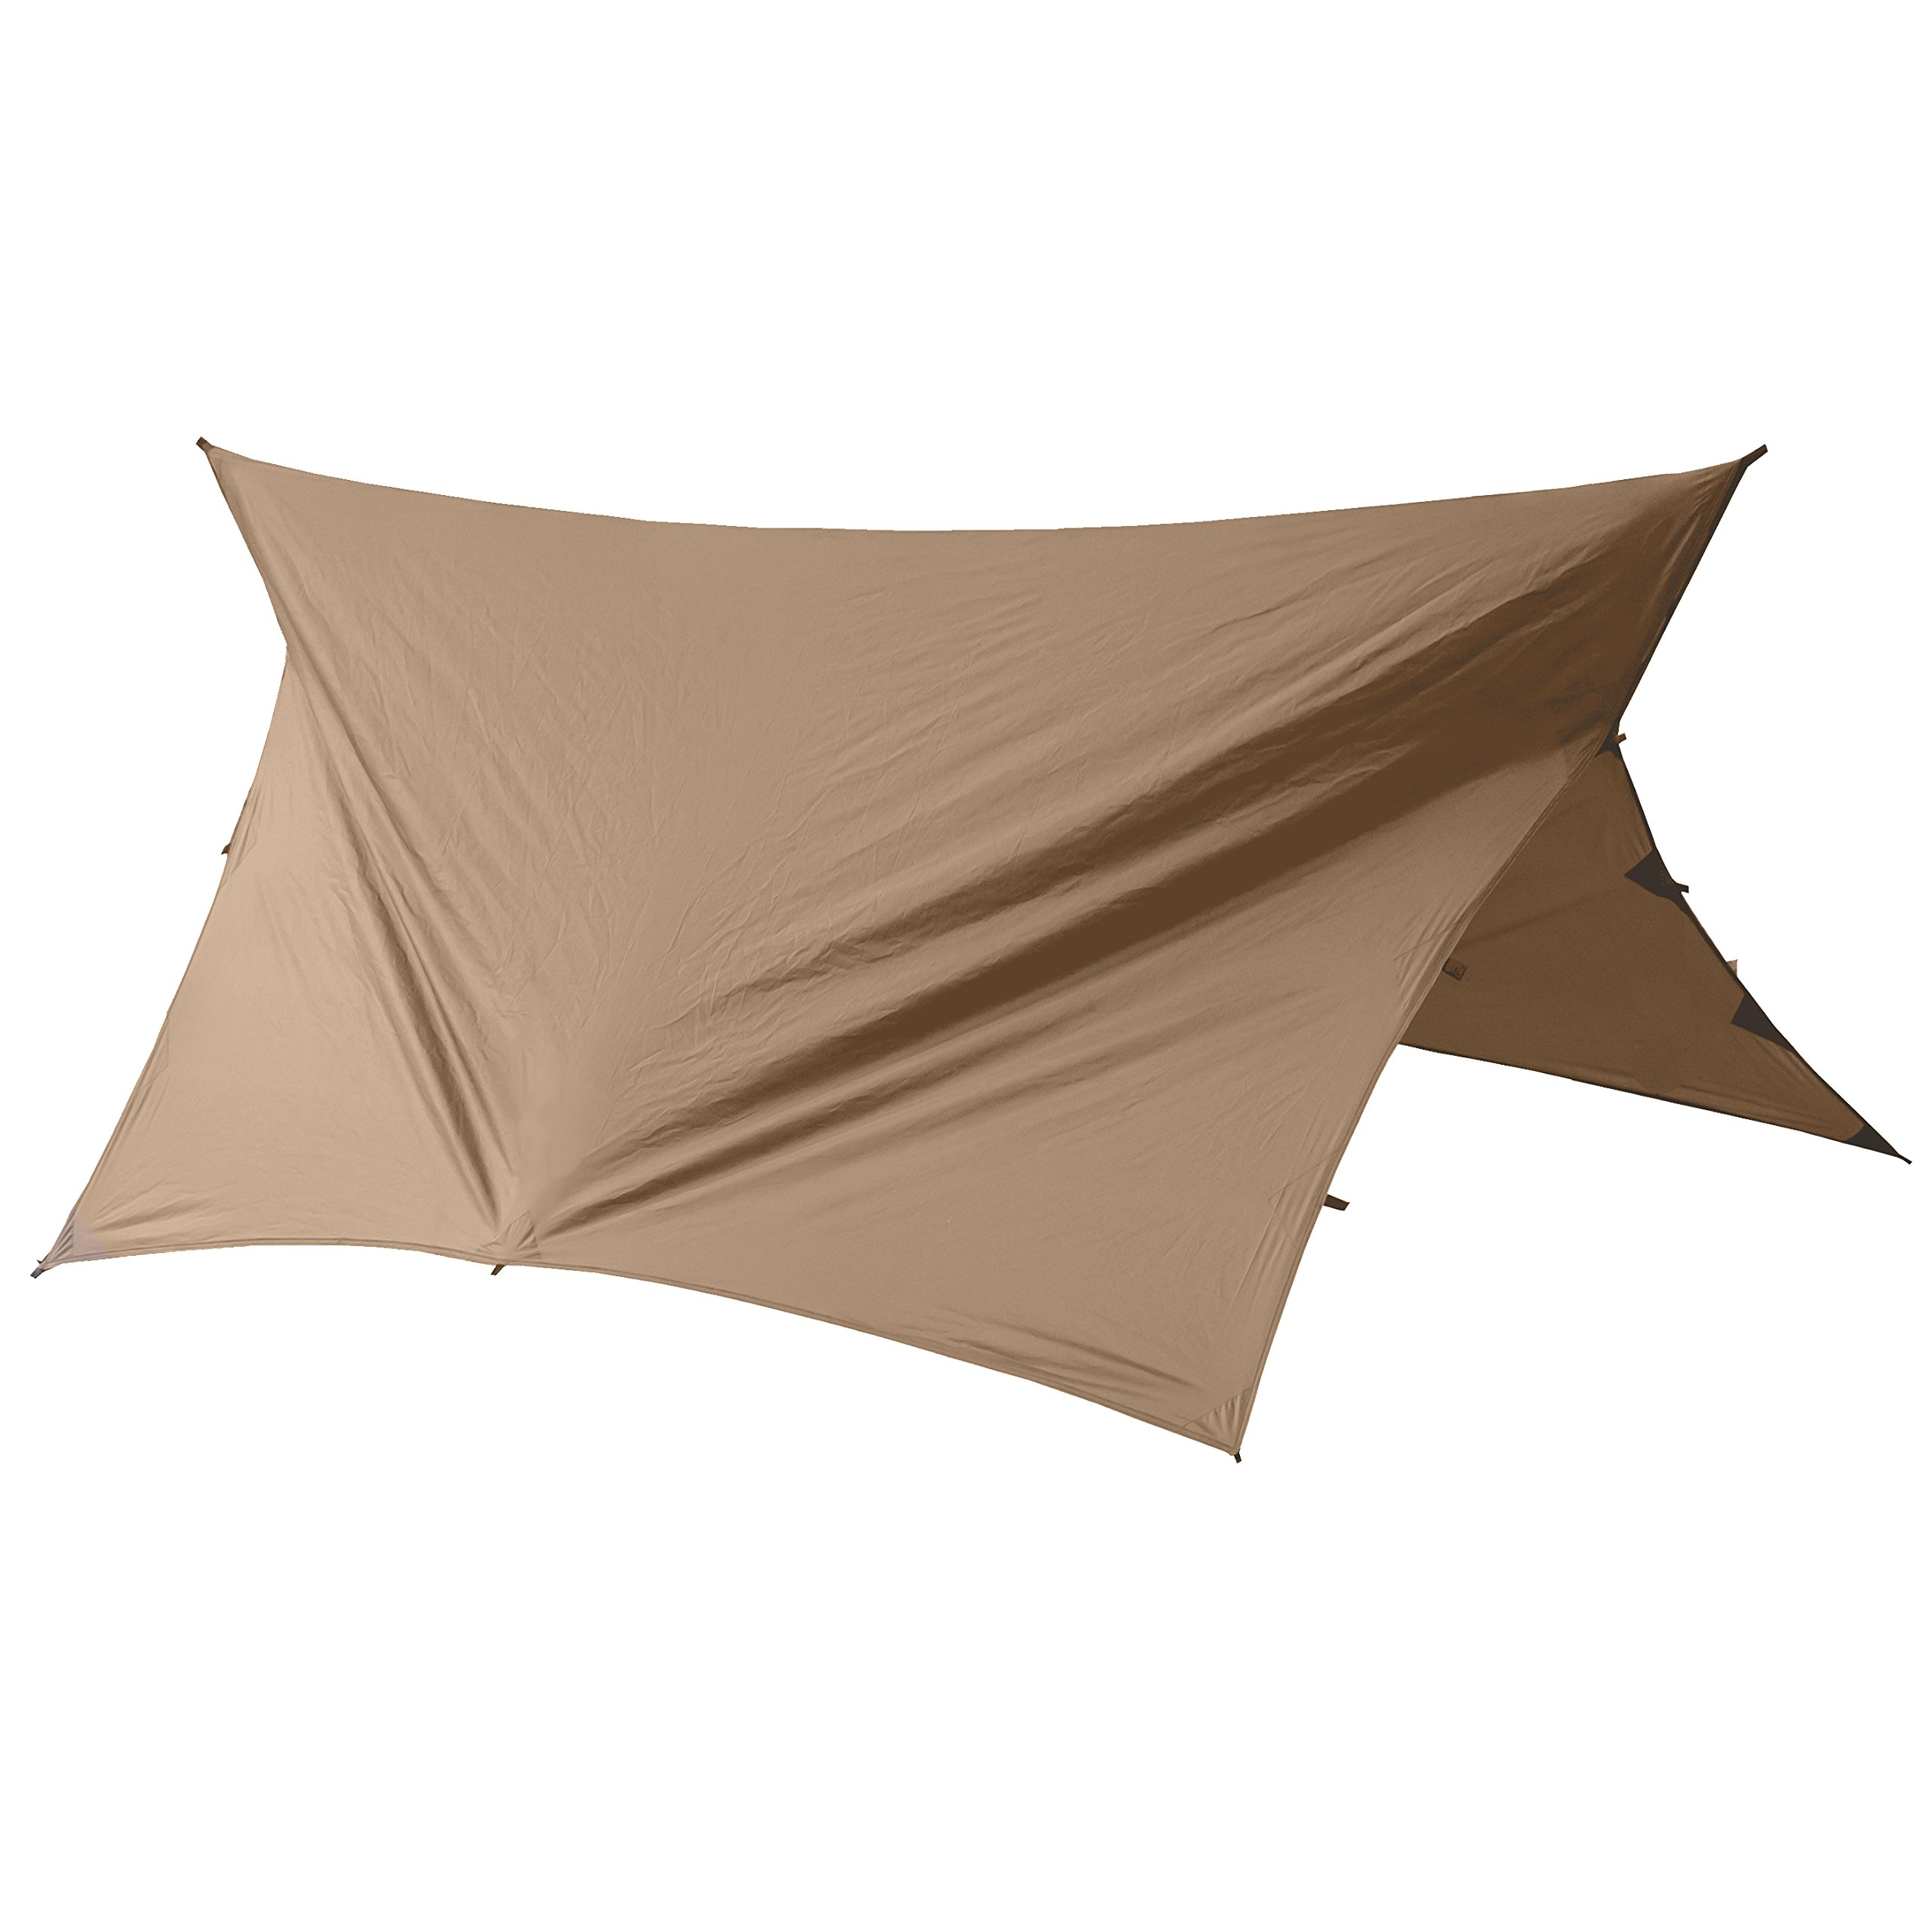 Go Outfitters Apex Camping Shelter/Hammock Tarp (Coyote Brown) by Go Outfitters